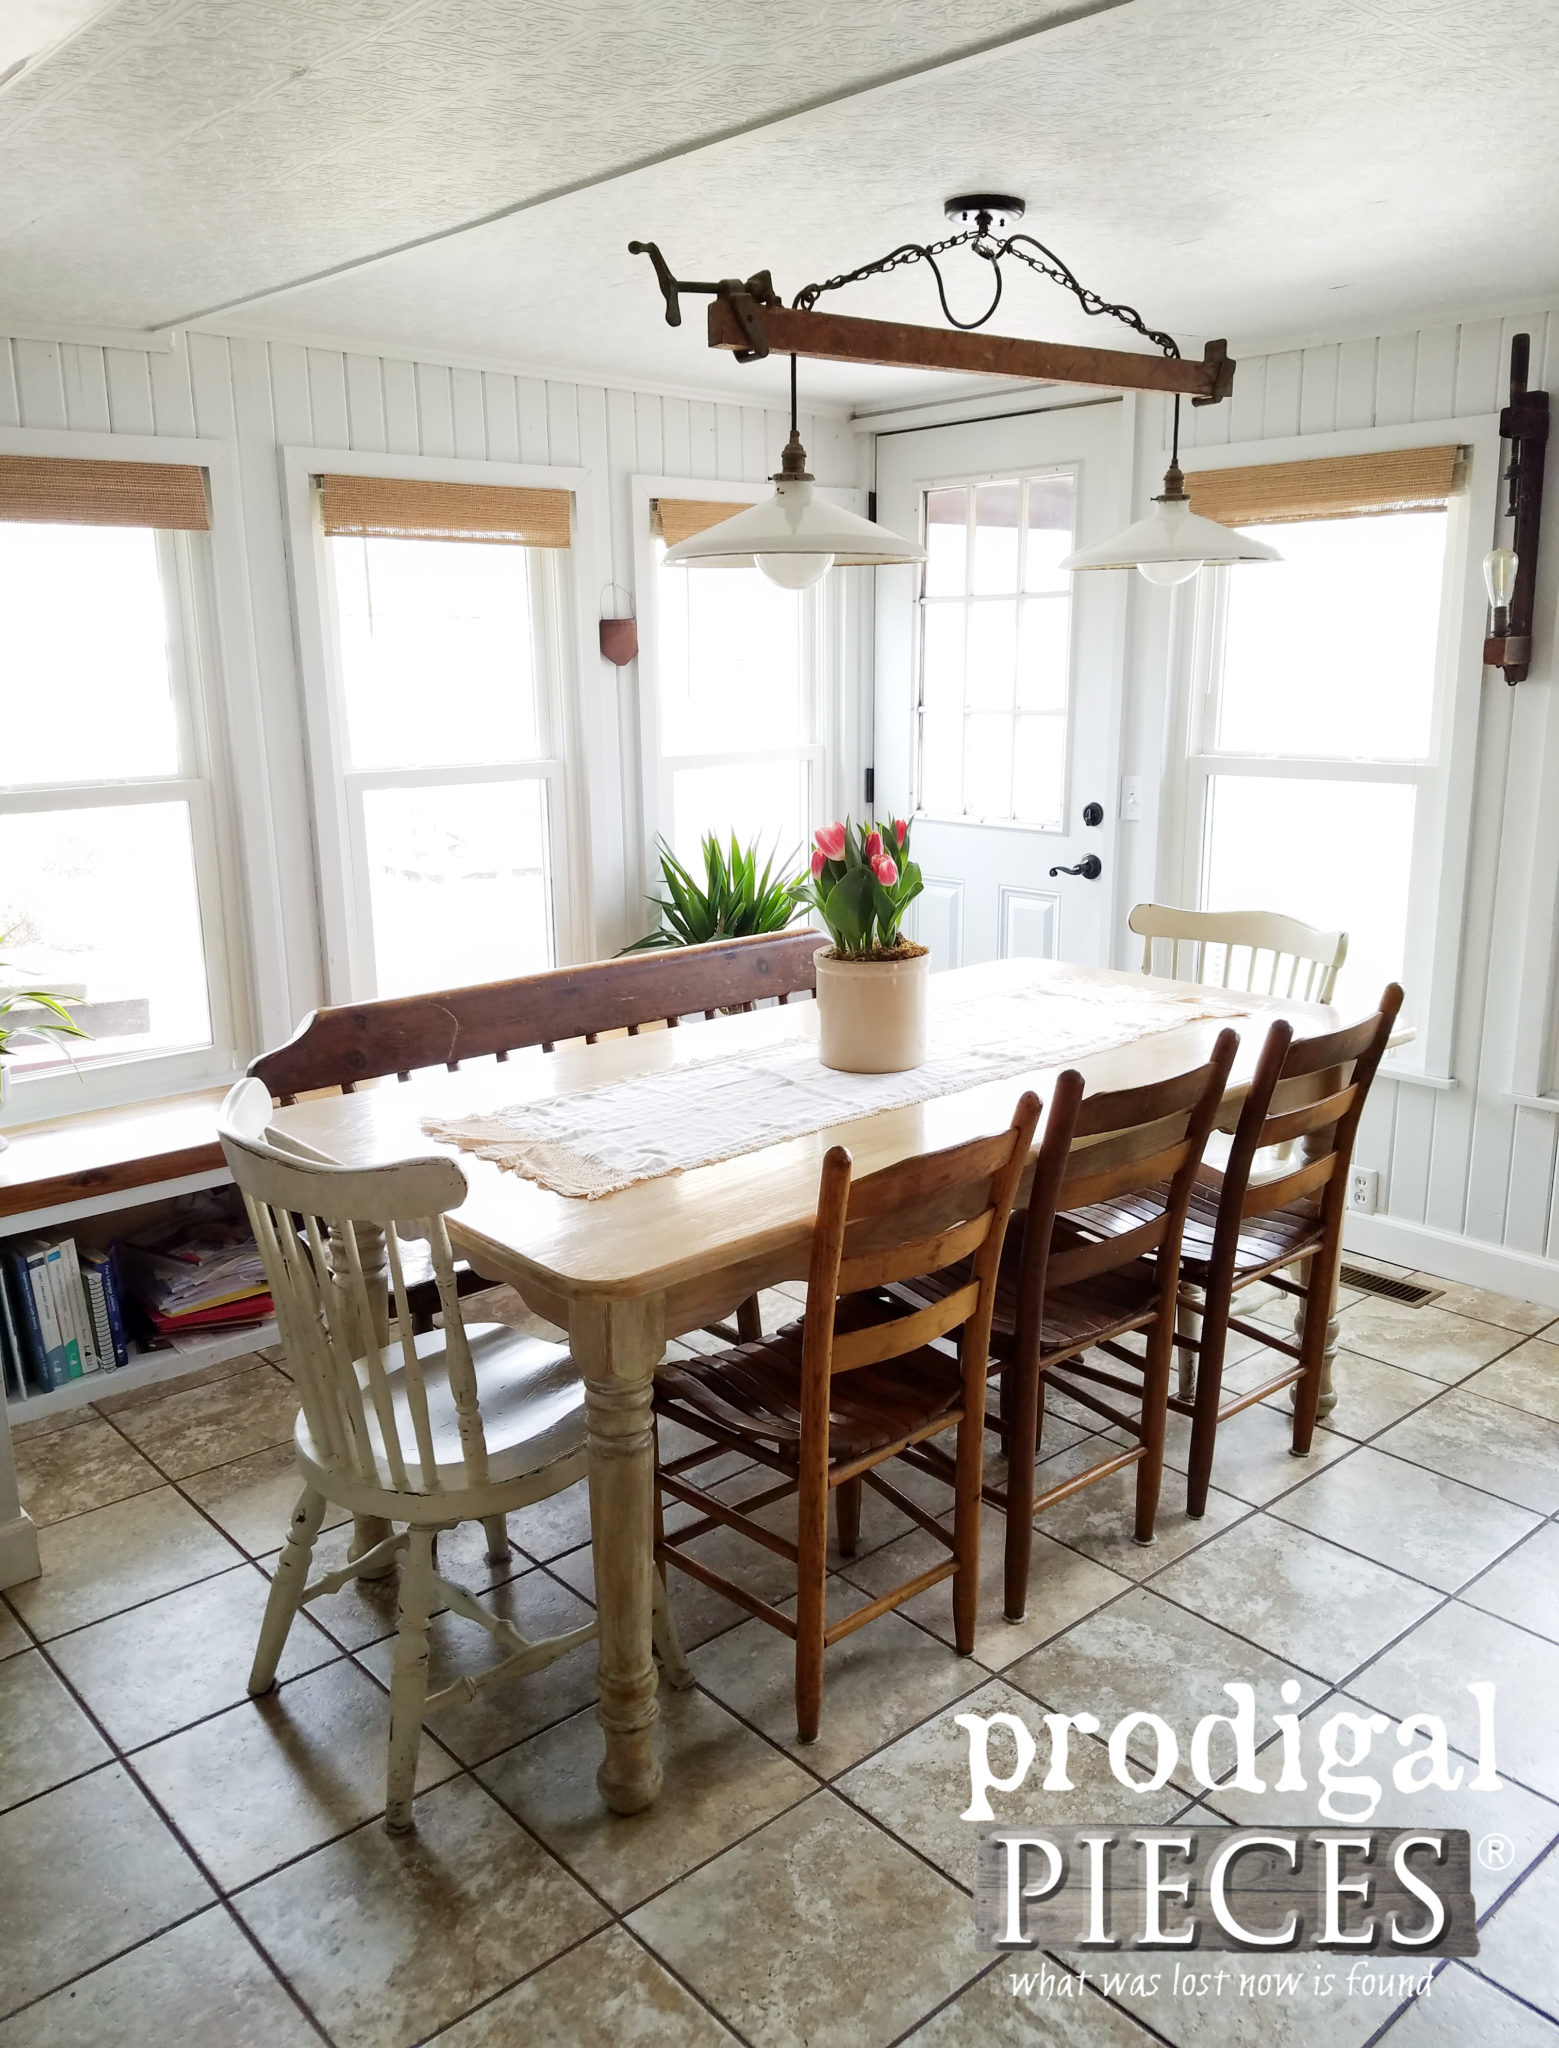 Farmhouse Dining Room with Eclectic Seating and Repurposed Lighting by Larissa of Prodigal Pieces | prodigalpieces.com